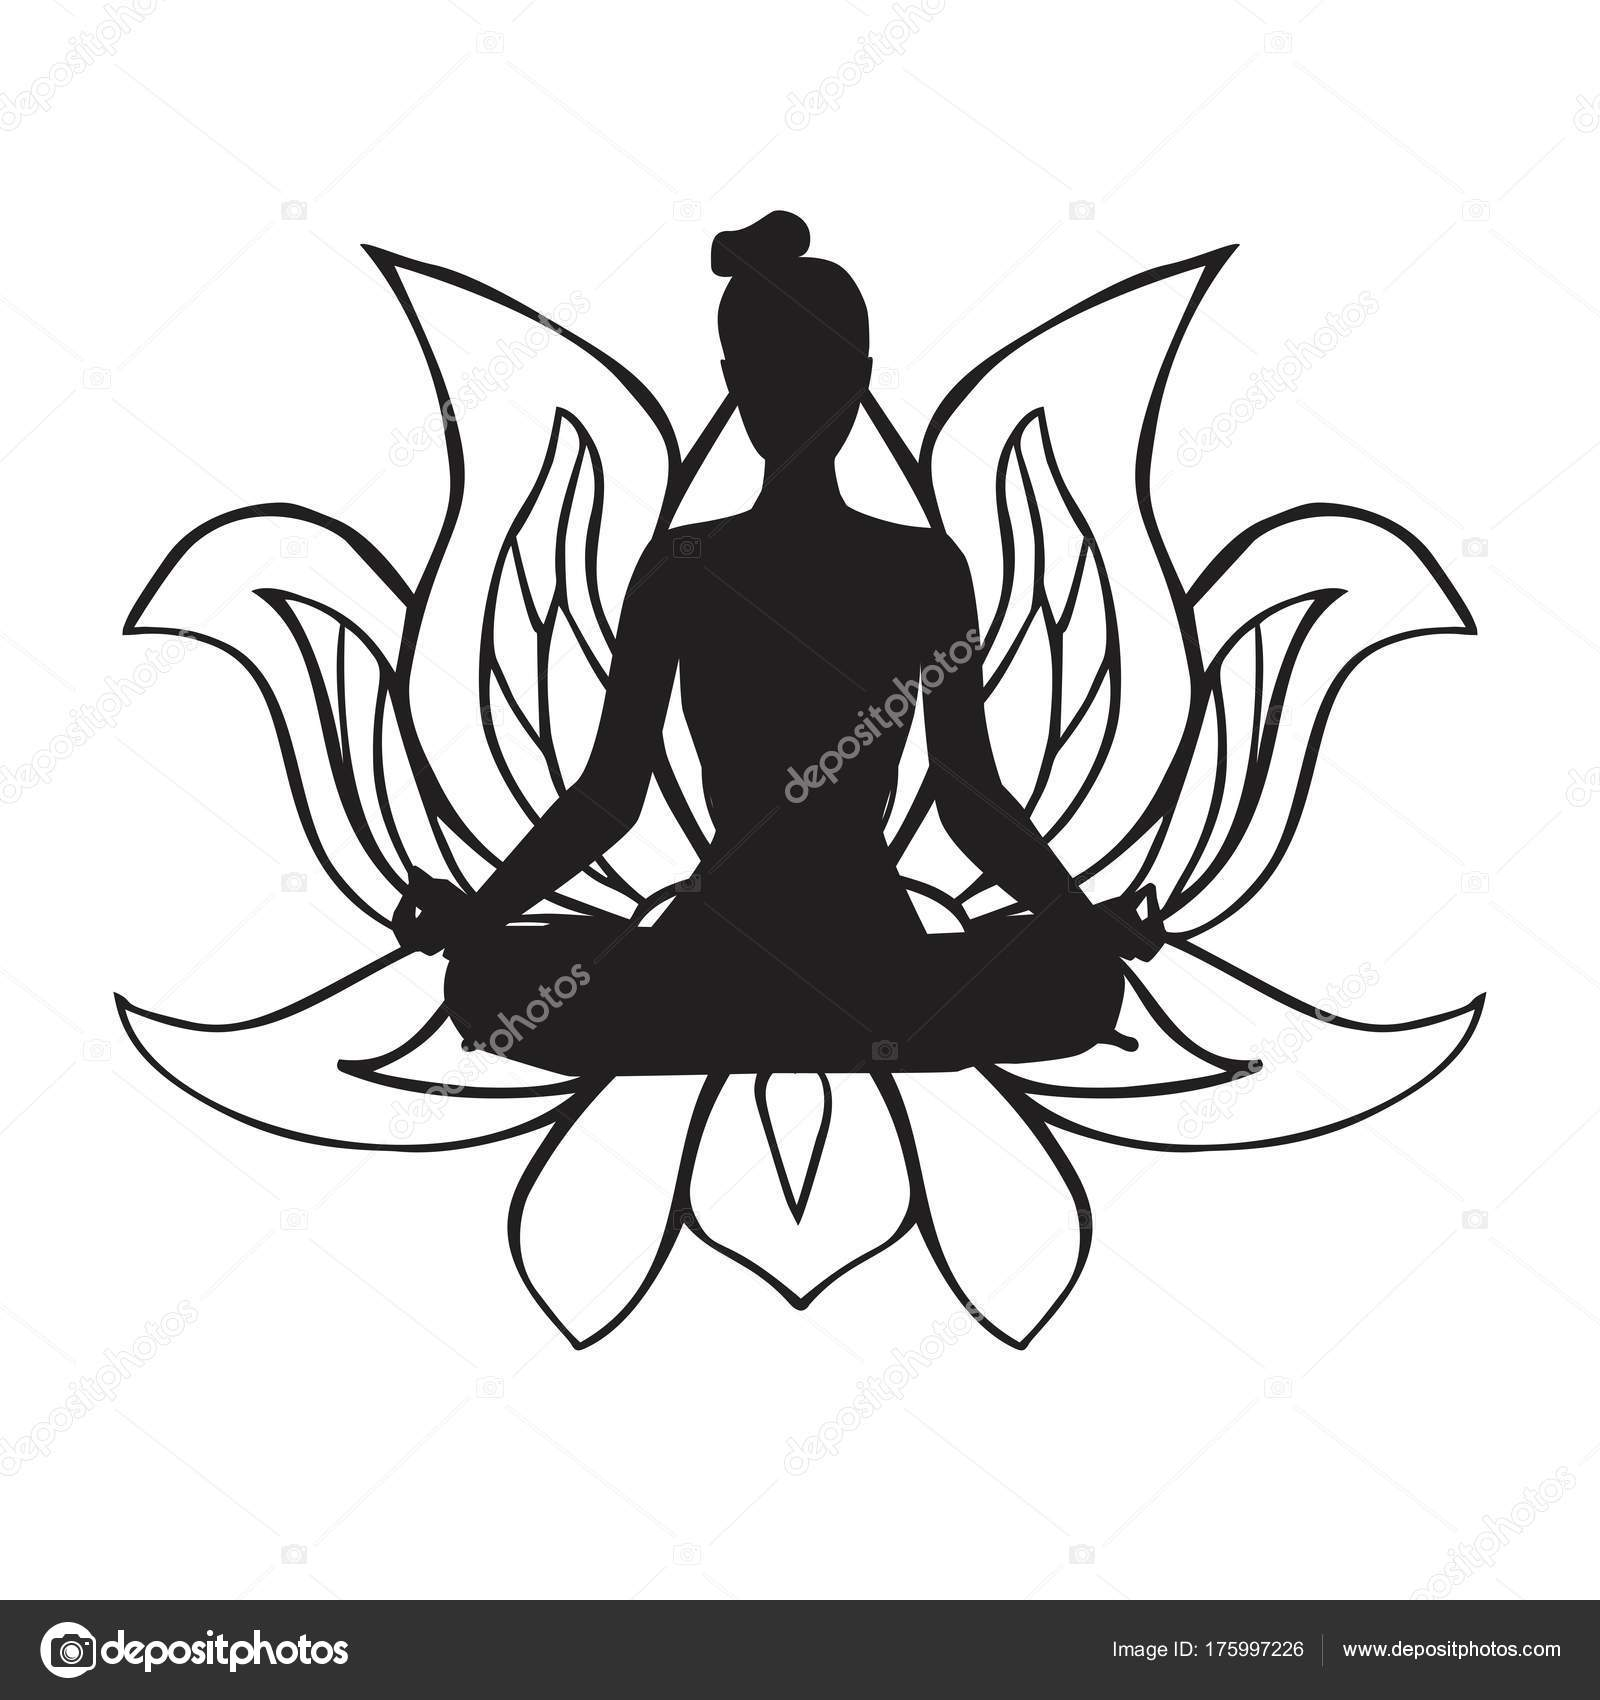 Vector illustration black female silhouette yoga pose buddhist vector illustration of black female silhouette in yoga pose and buddhist symbol lotus flower slim body woman doing meditation practice mightylinksfo Choice Image